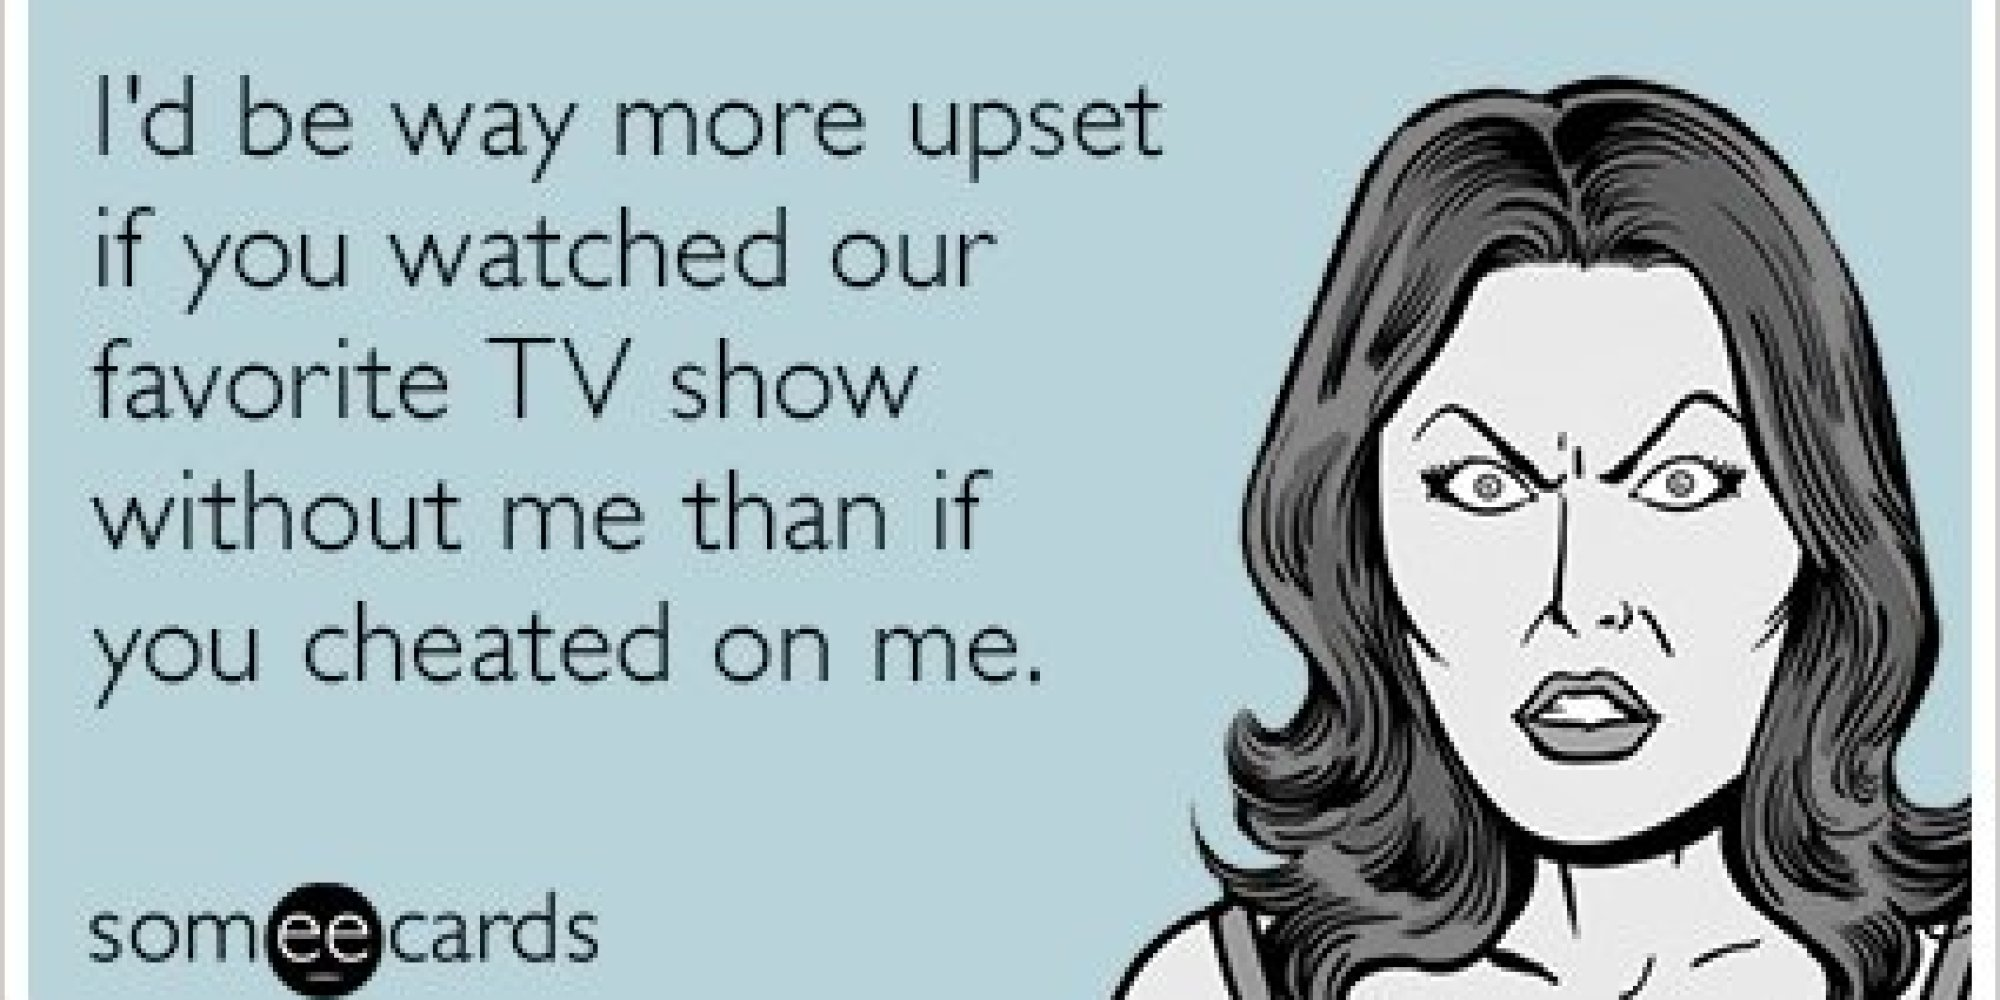 9 Funny Someecards To End The Week With A Laugh Huffpost